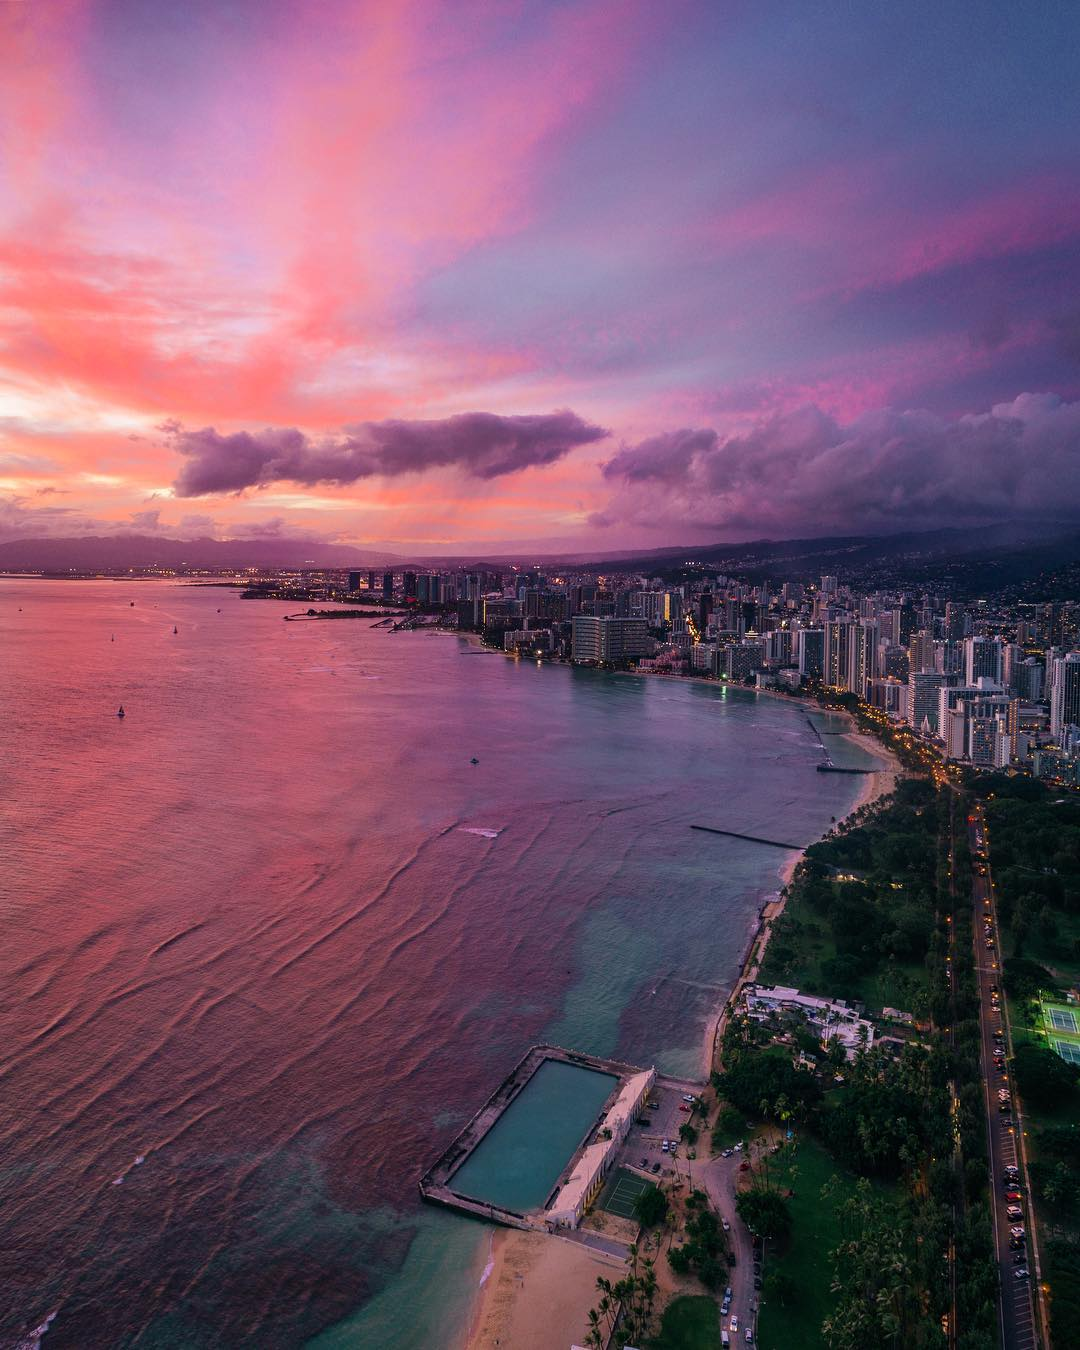 The famous Waikiki Beach, an absolute must for sunset! - 15 Best Beaches on Oahu